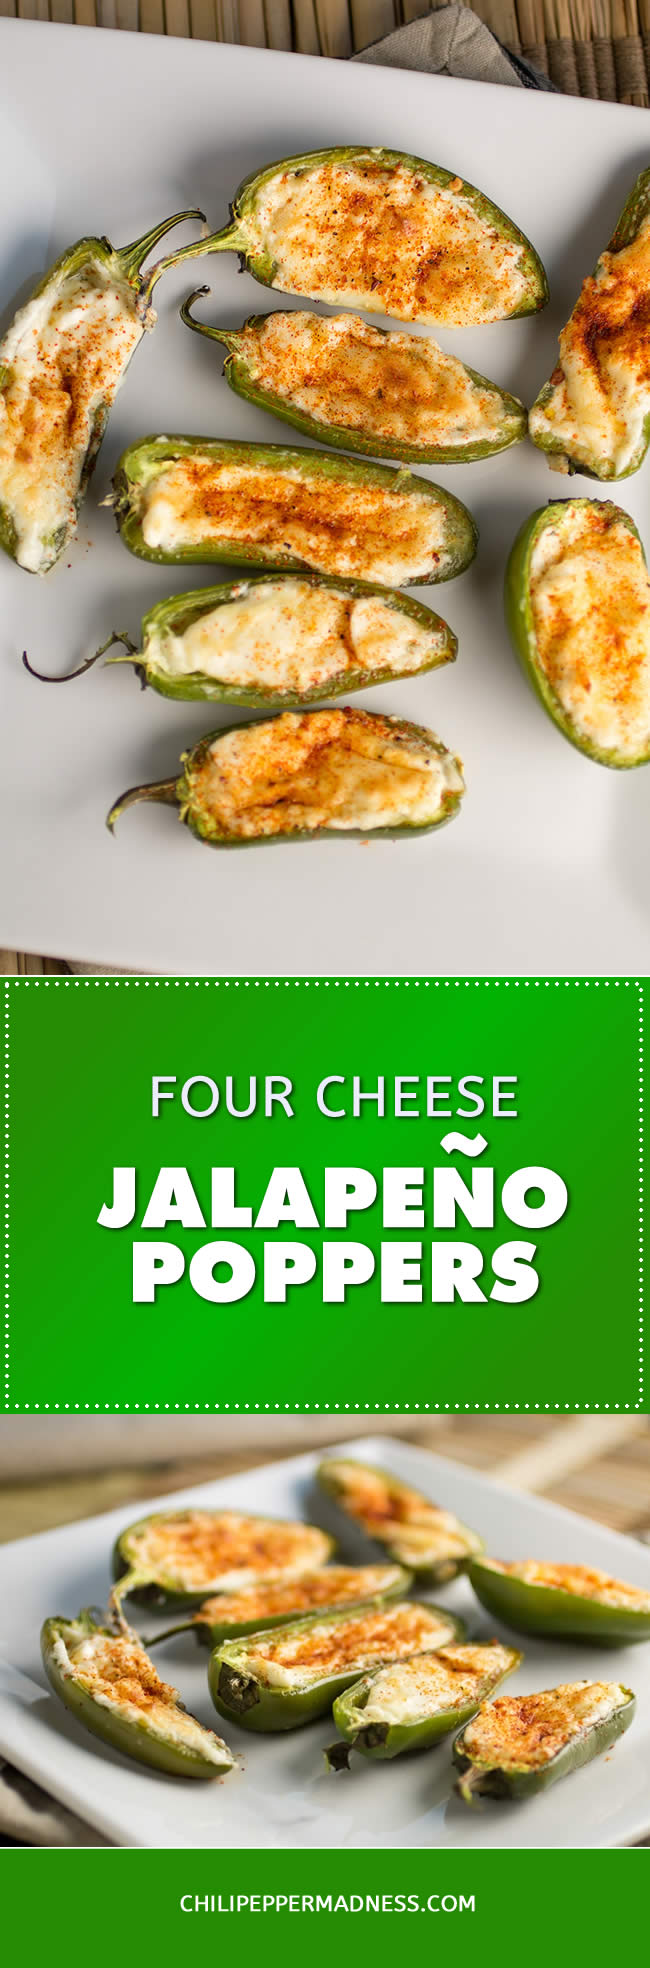 Four Cheese Jalapeno Poppers - Recipe